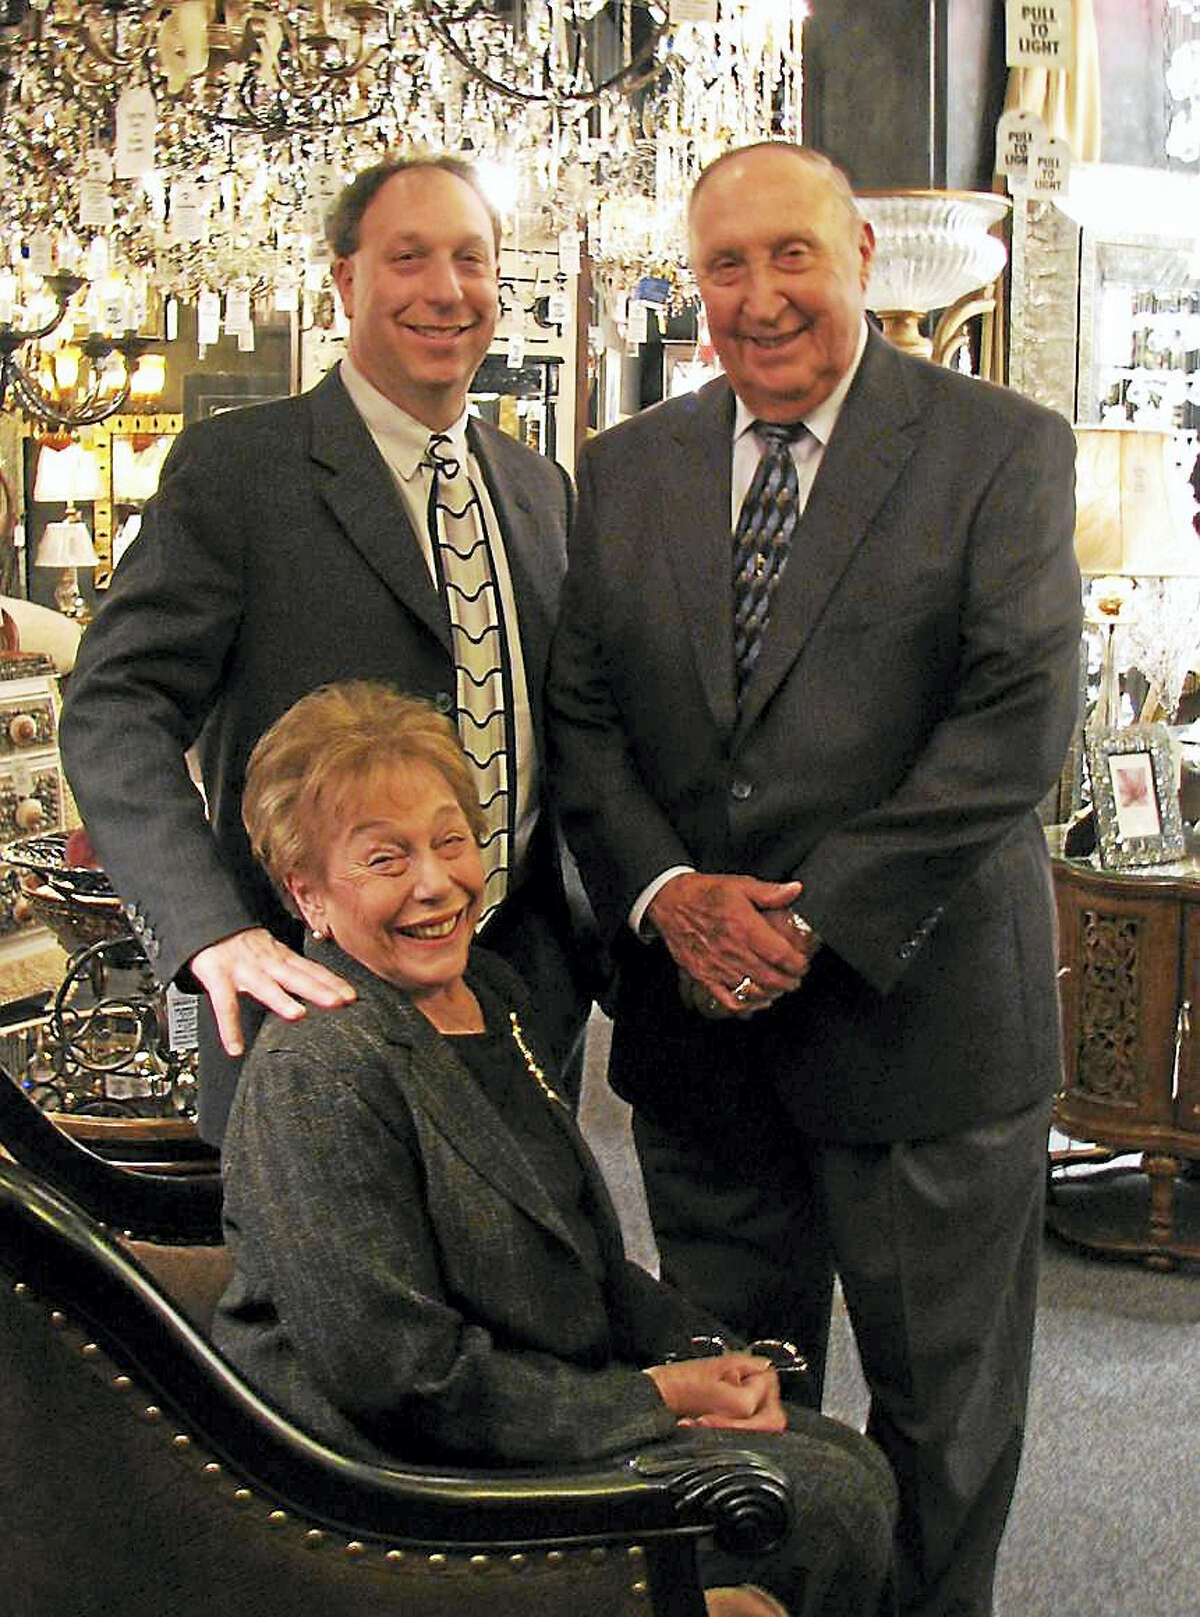 From left are David Director, his mother Edythe and father Arthur, who first introduced the Big Brothers Big Sisters chapter to Connecticut in the mid-1960s.